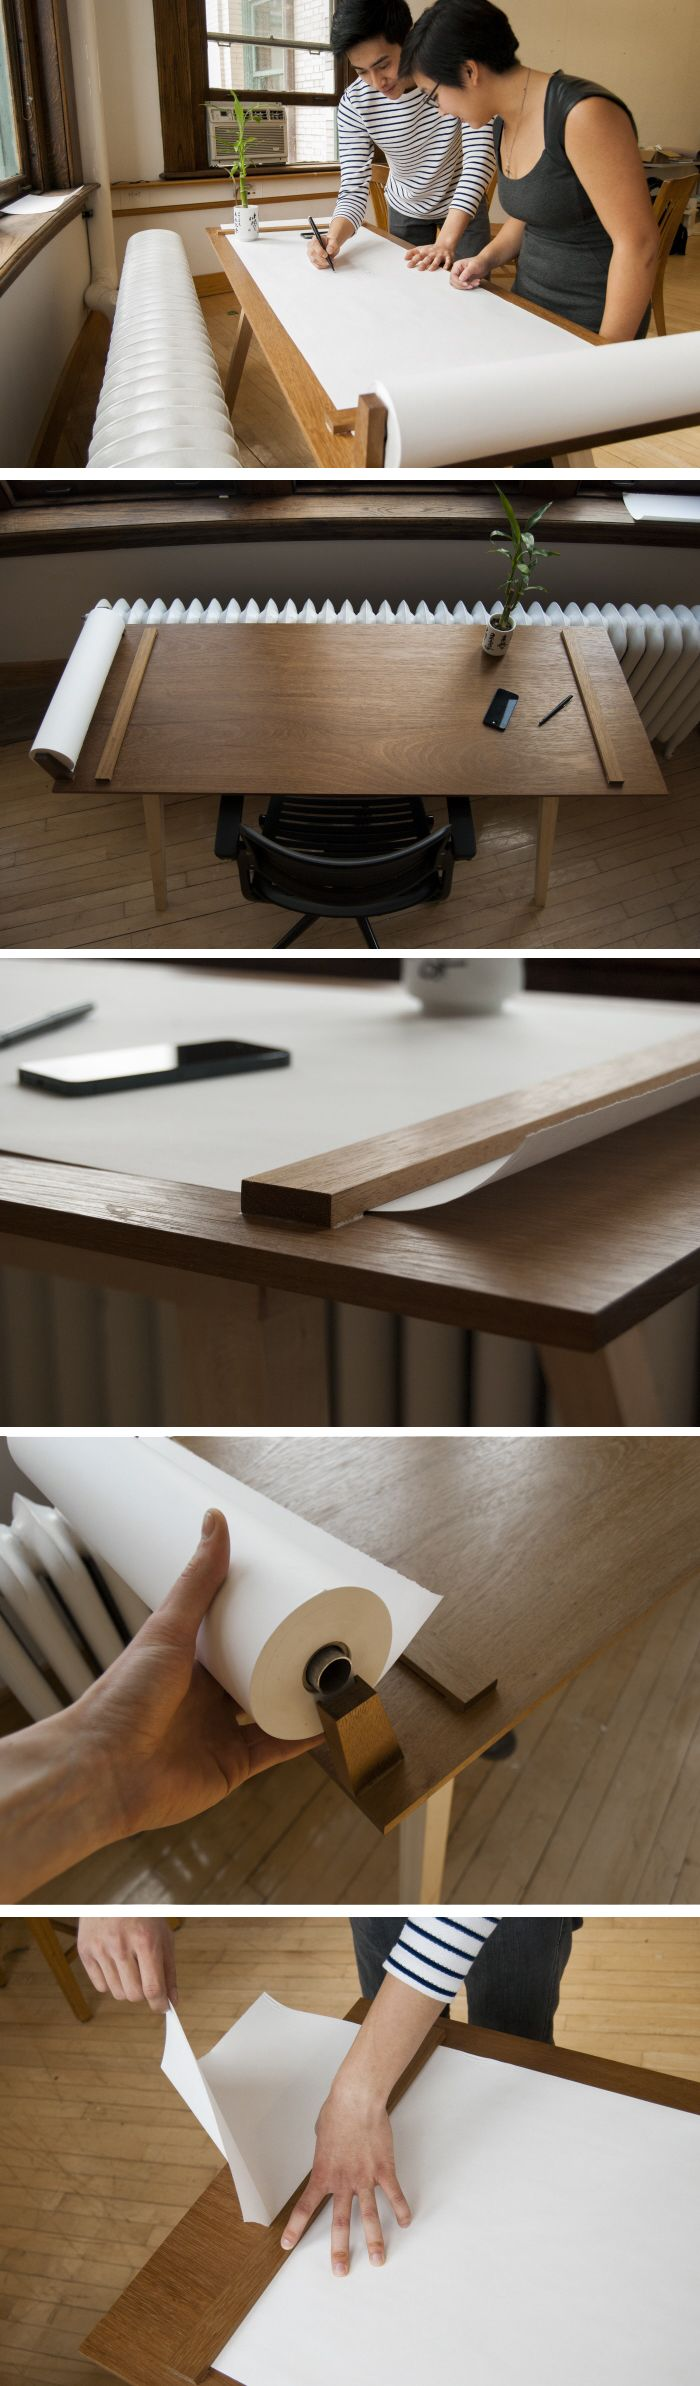 Collaboration Desk by Scott Alberstein  http://www.coroflot.com/salberst/Collaboration-Desk